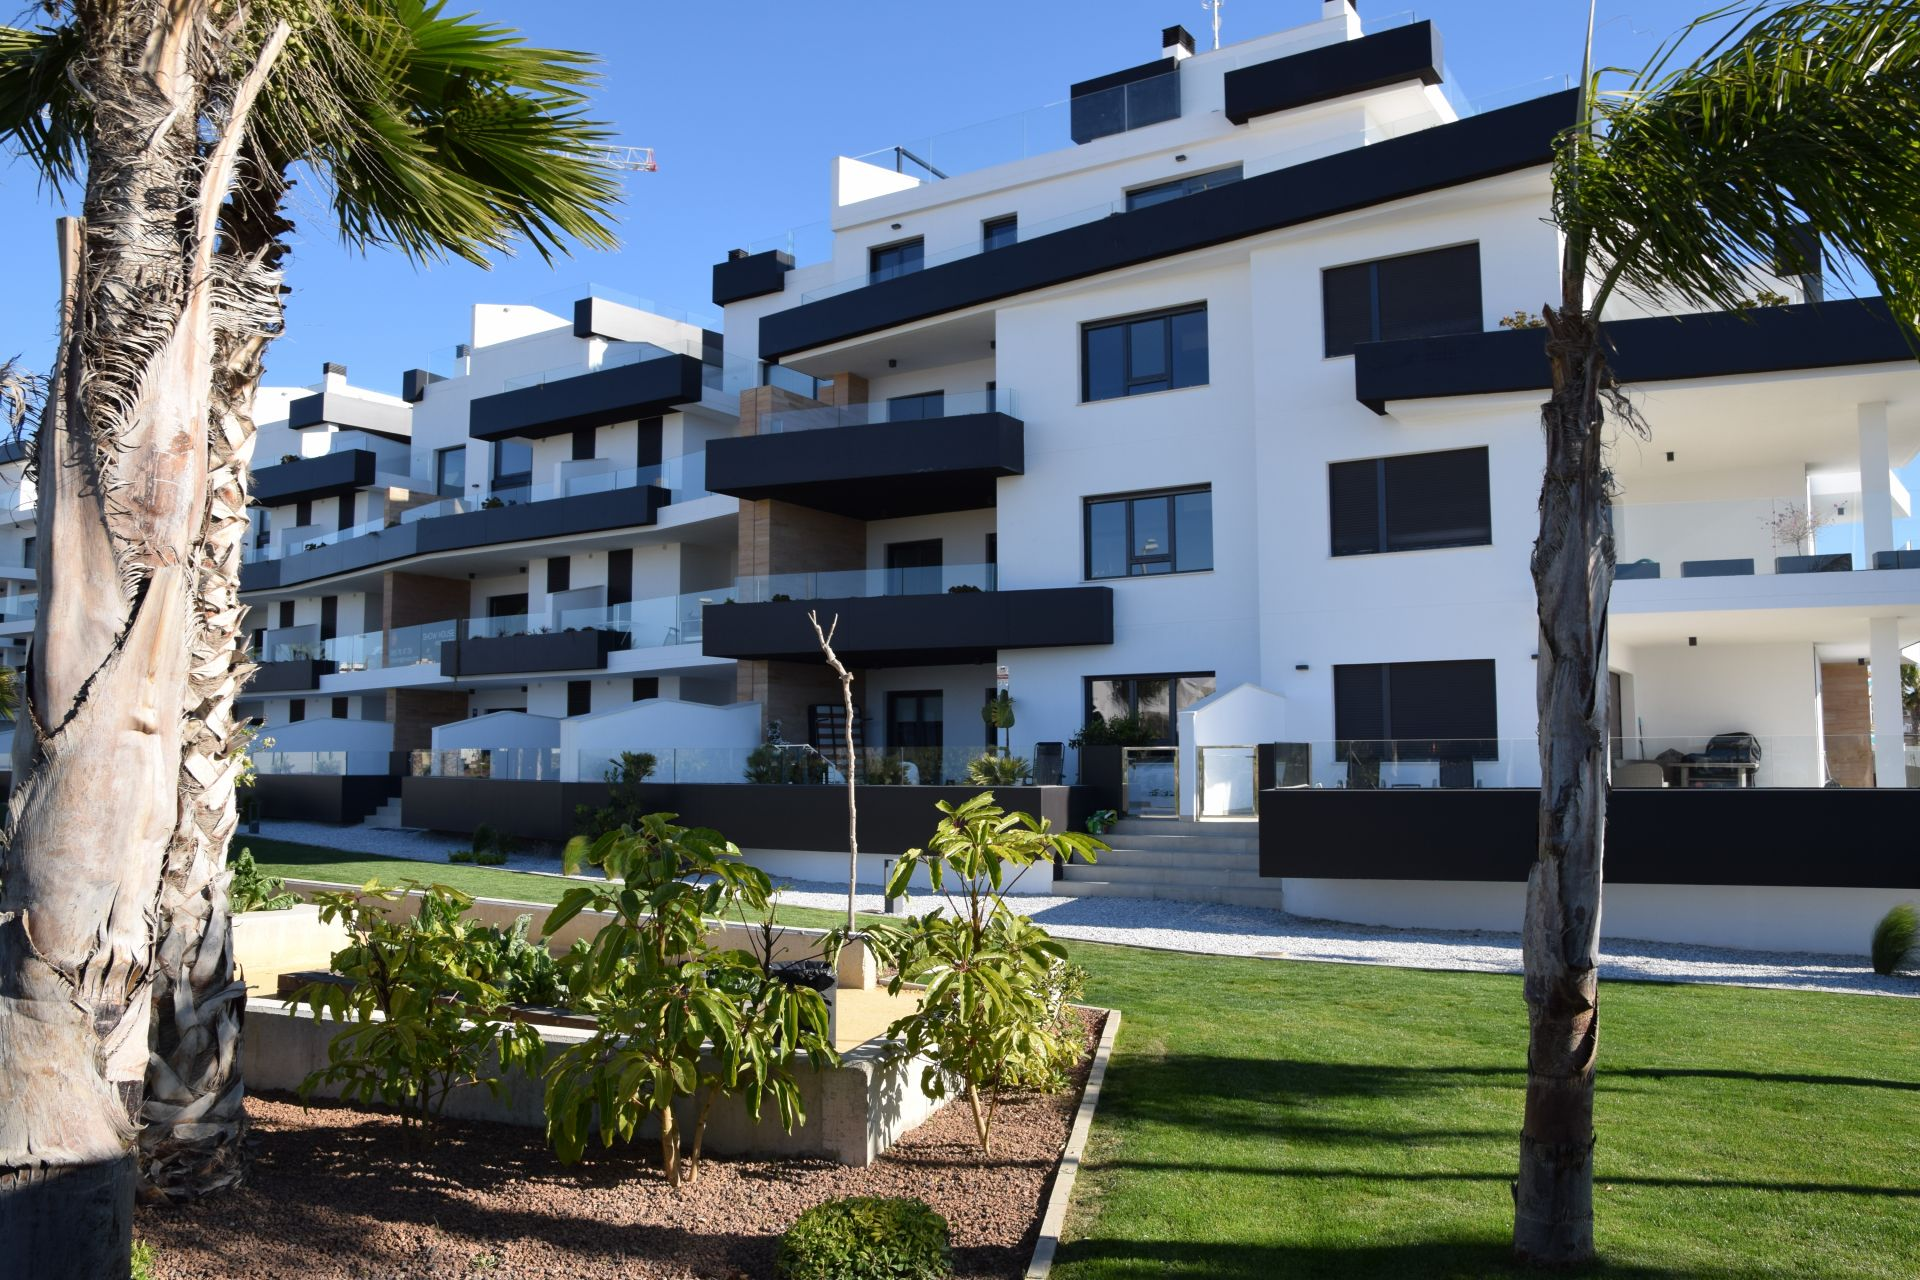 2 and 3 bedroom apartments in complex with pool in Orihuela Costa 3